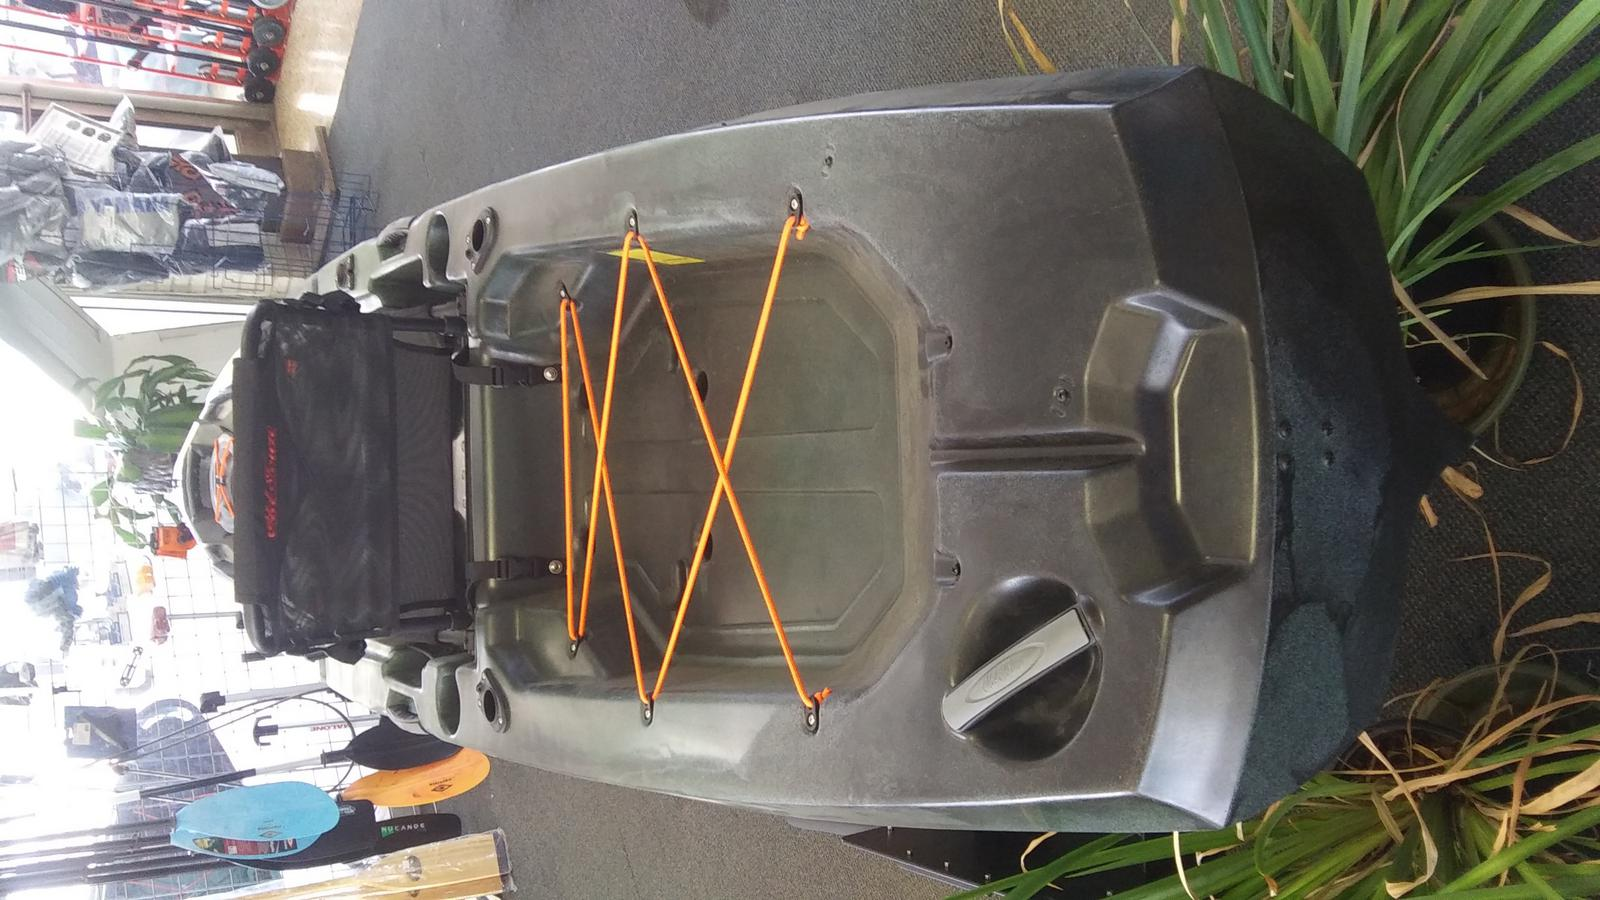 2020 Old Town Canoes and Kayaks boat for sale, model of the boat is Topwater 120 Angler & Image # 2 of 8